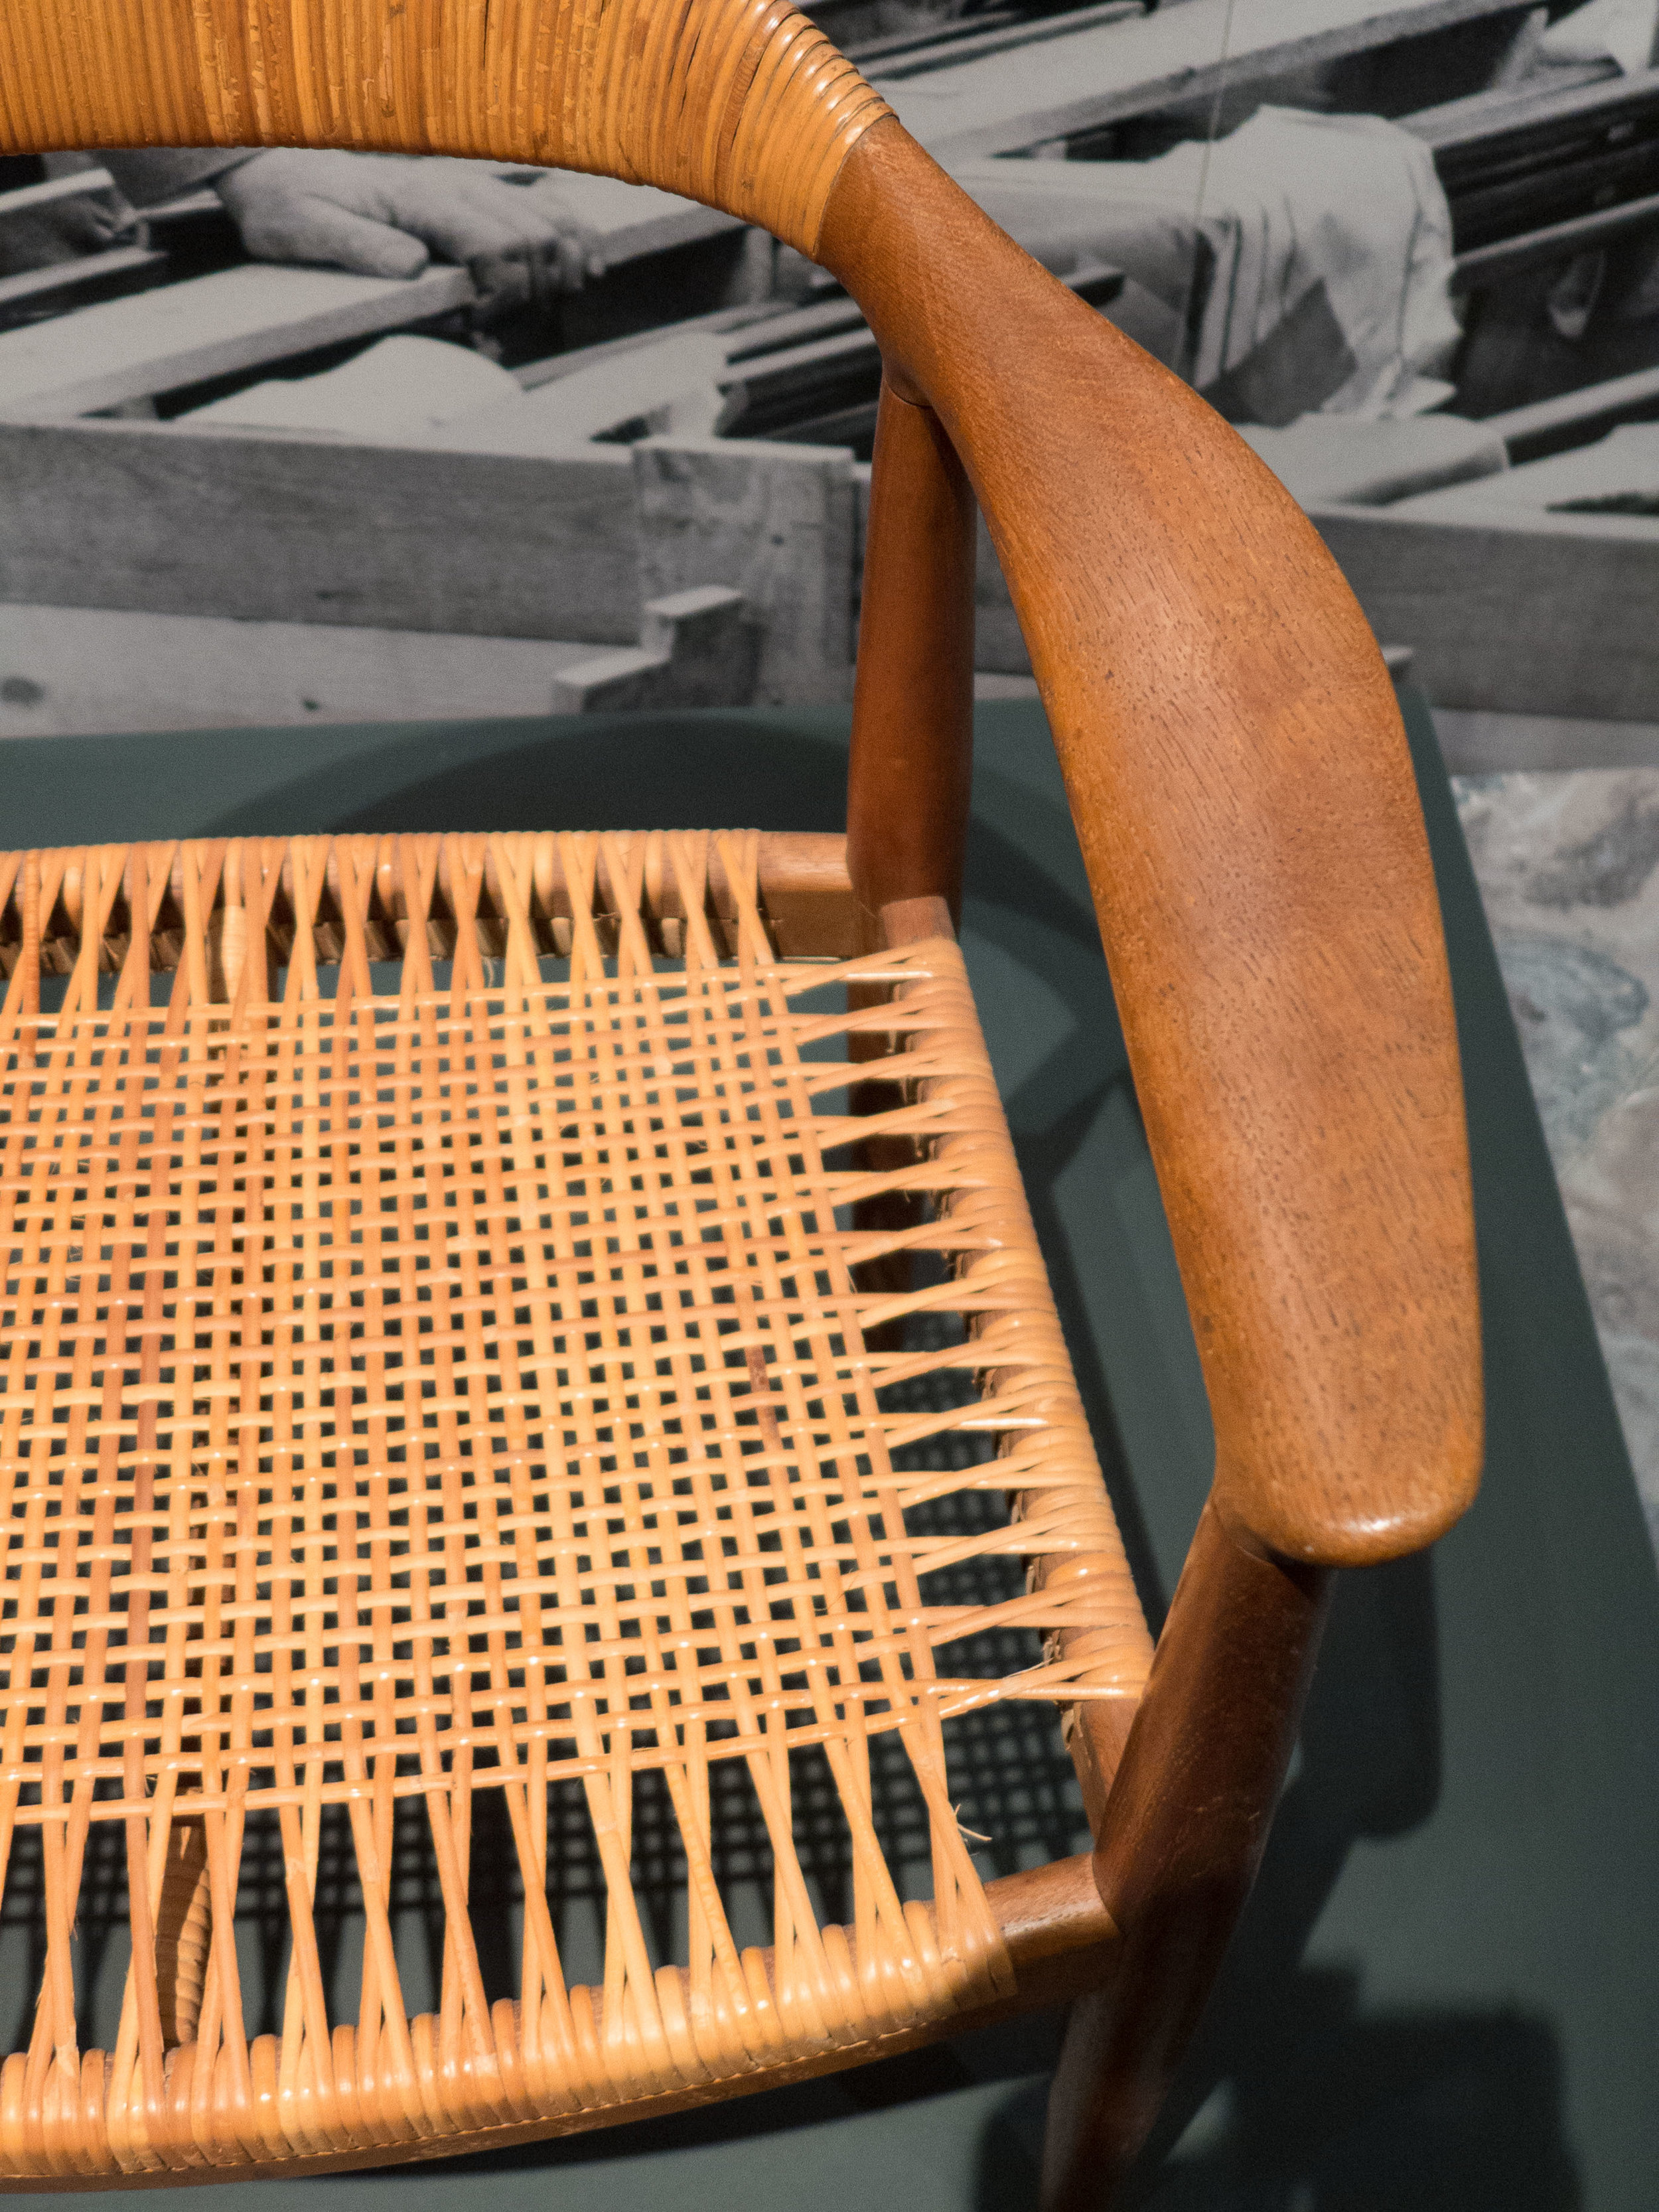 Den Runde Stol The Chair By Hans Wegner 1949 Danish Architecture And Design Review